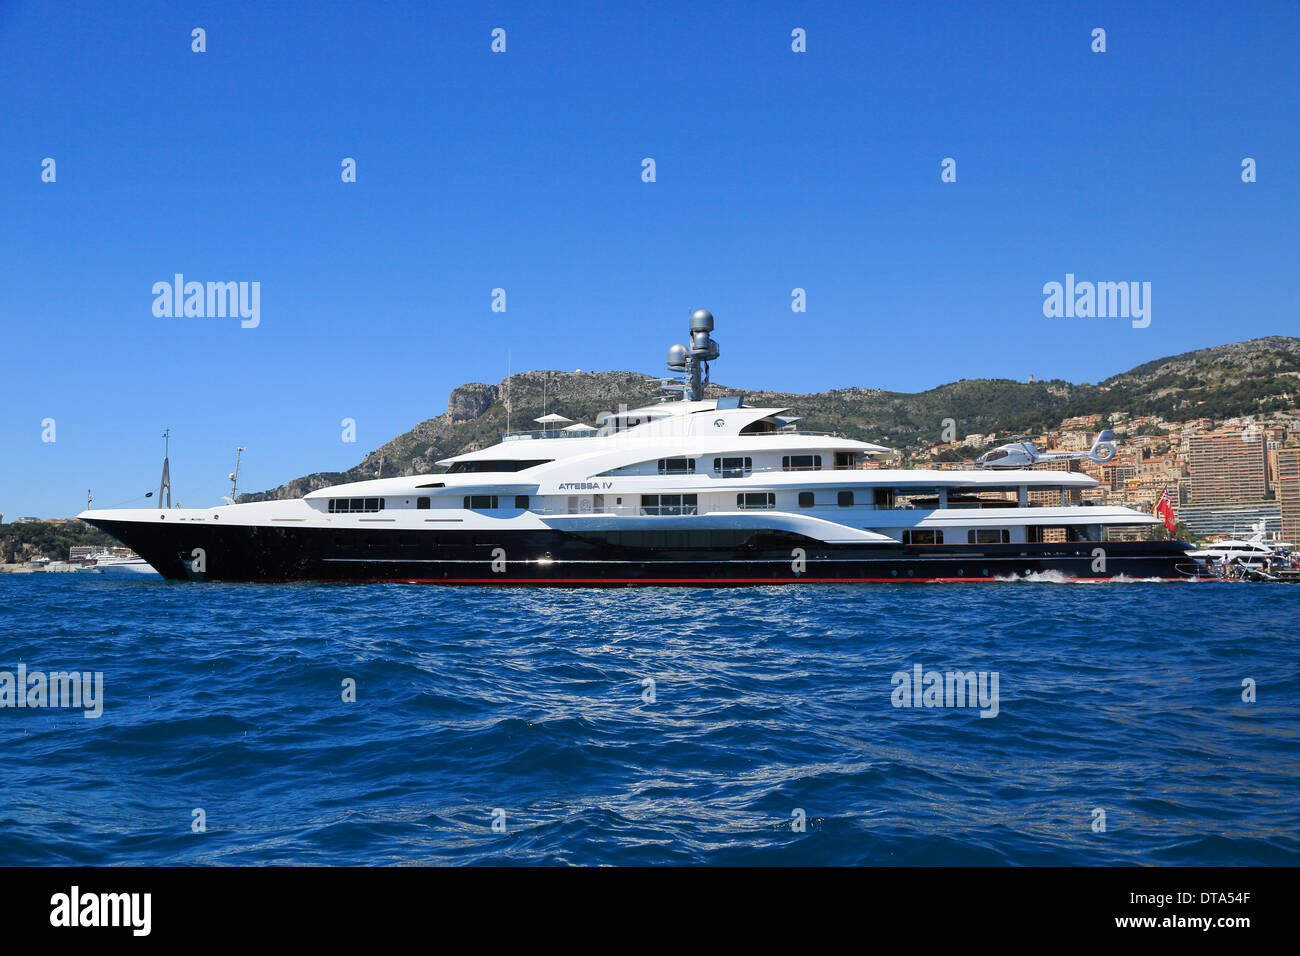 Motor Yacht Attessa Iv Ex Evergreen At Anchor In Front Of The